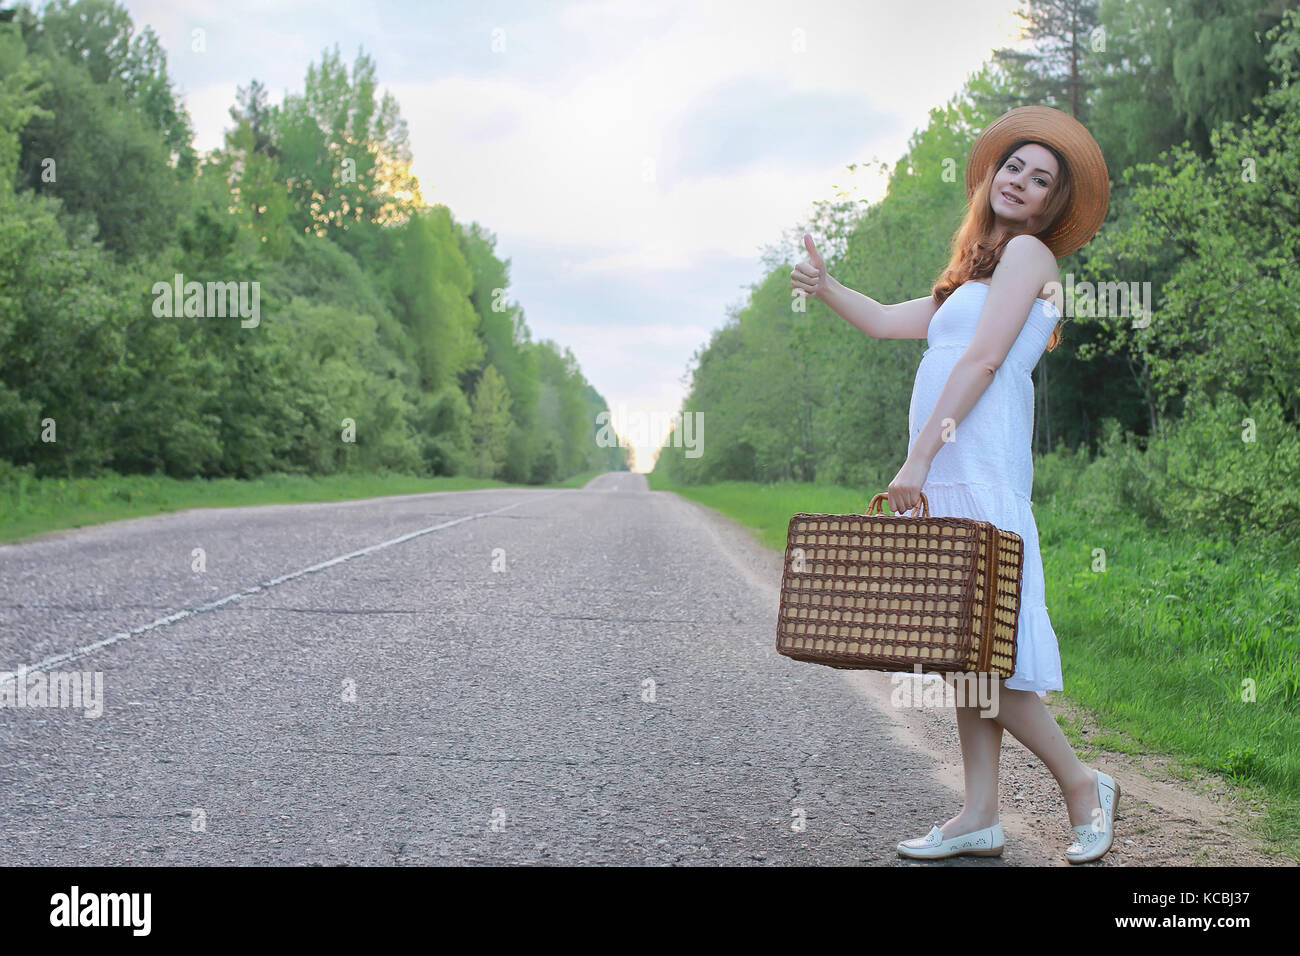 girl in a white sundress and wicker suitcase walking on rails - Stock Image